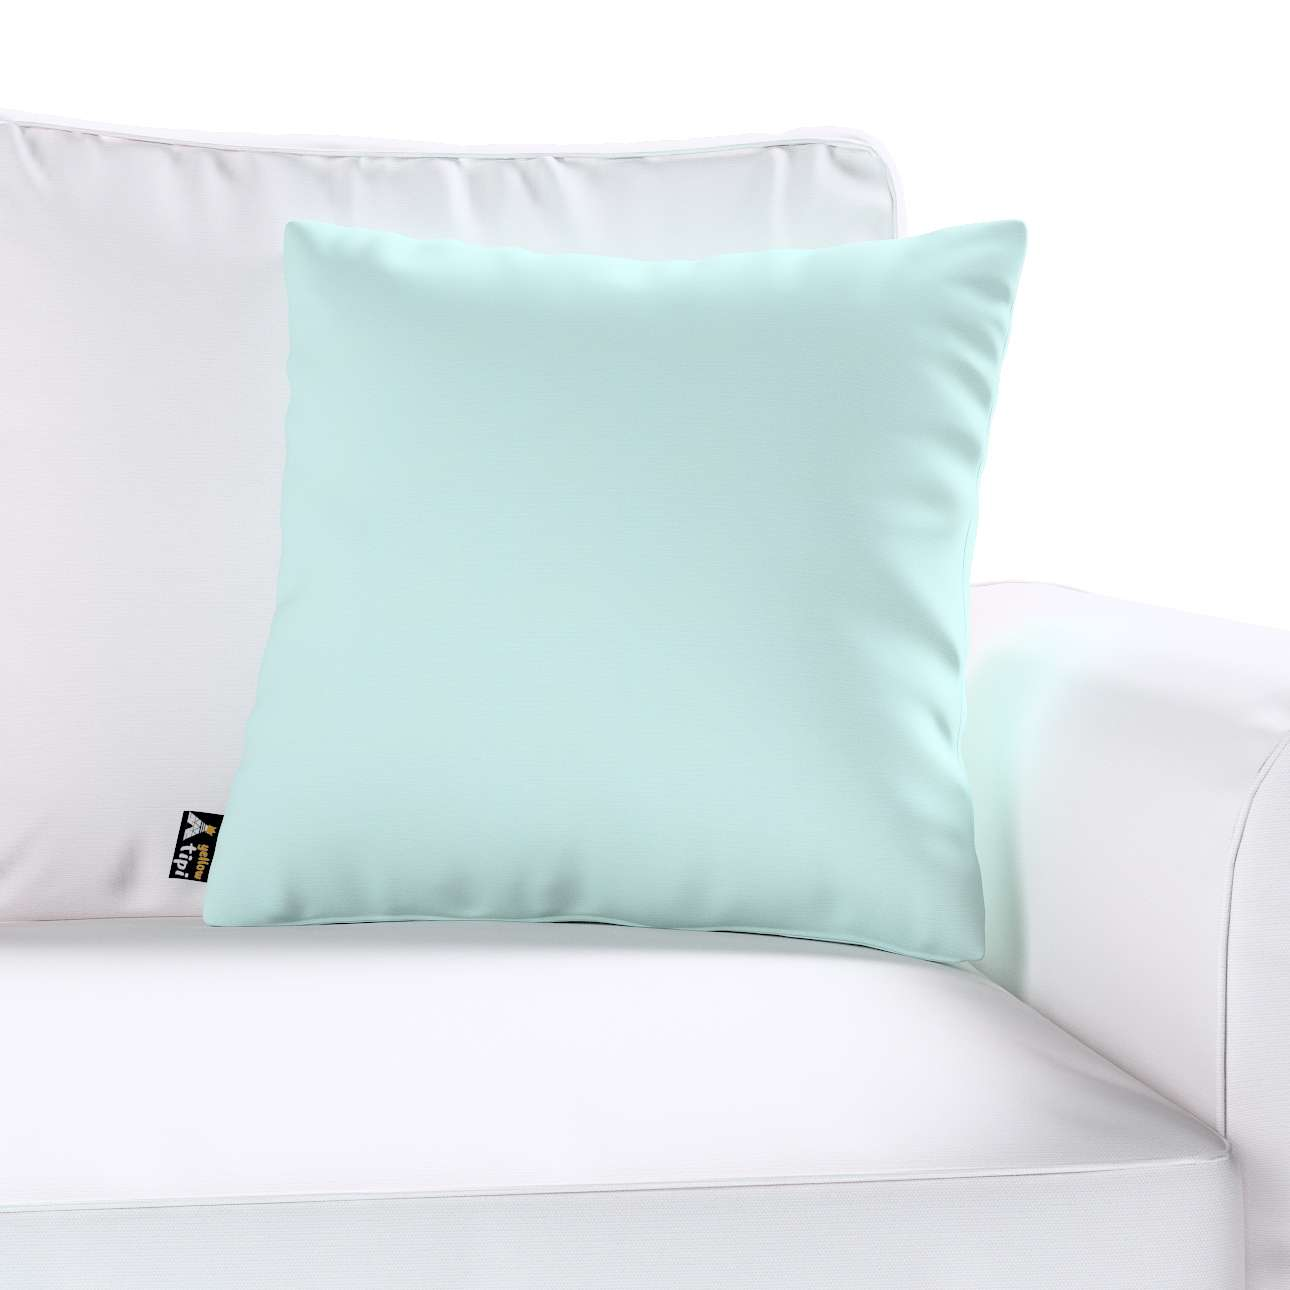 Milly cushion cover in collection Cotton Story, fabric: 702-10